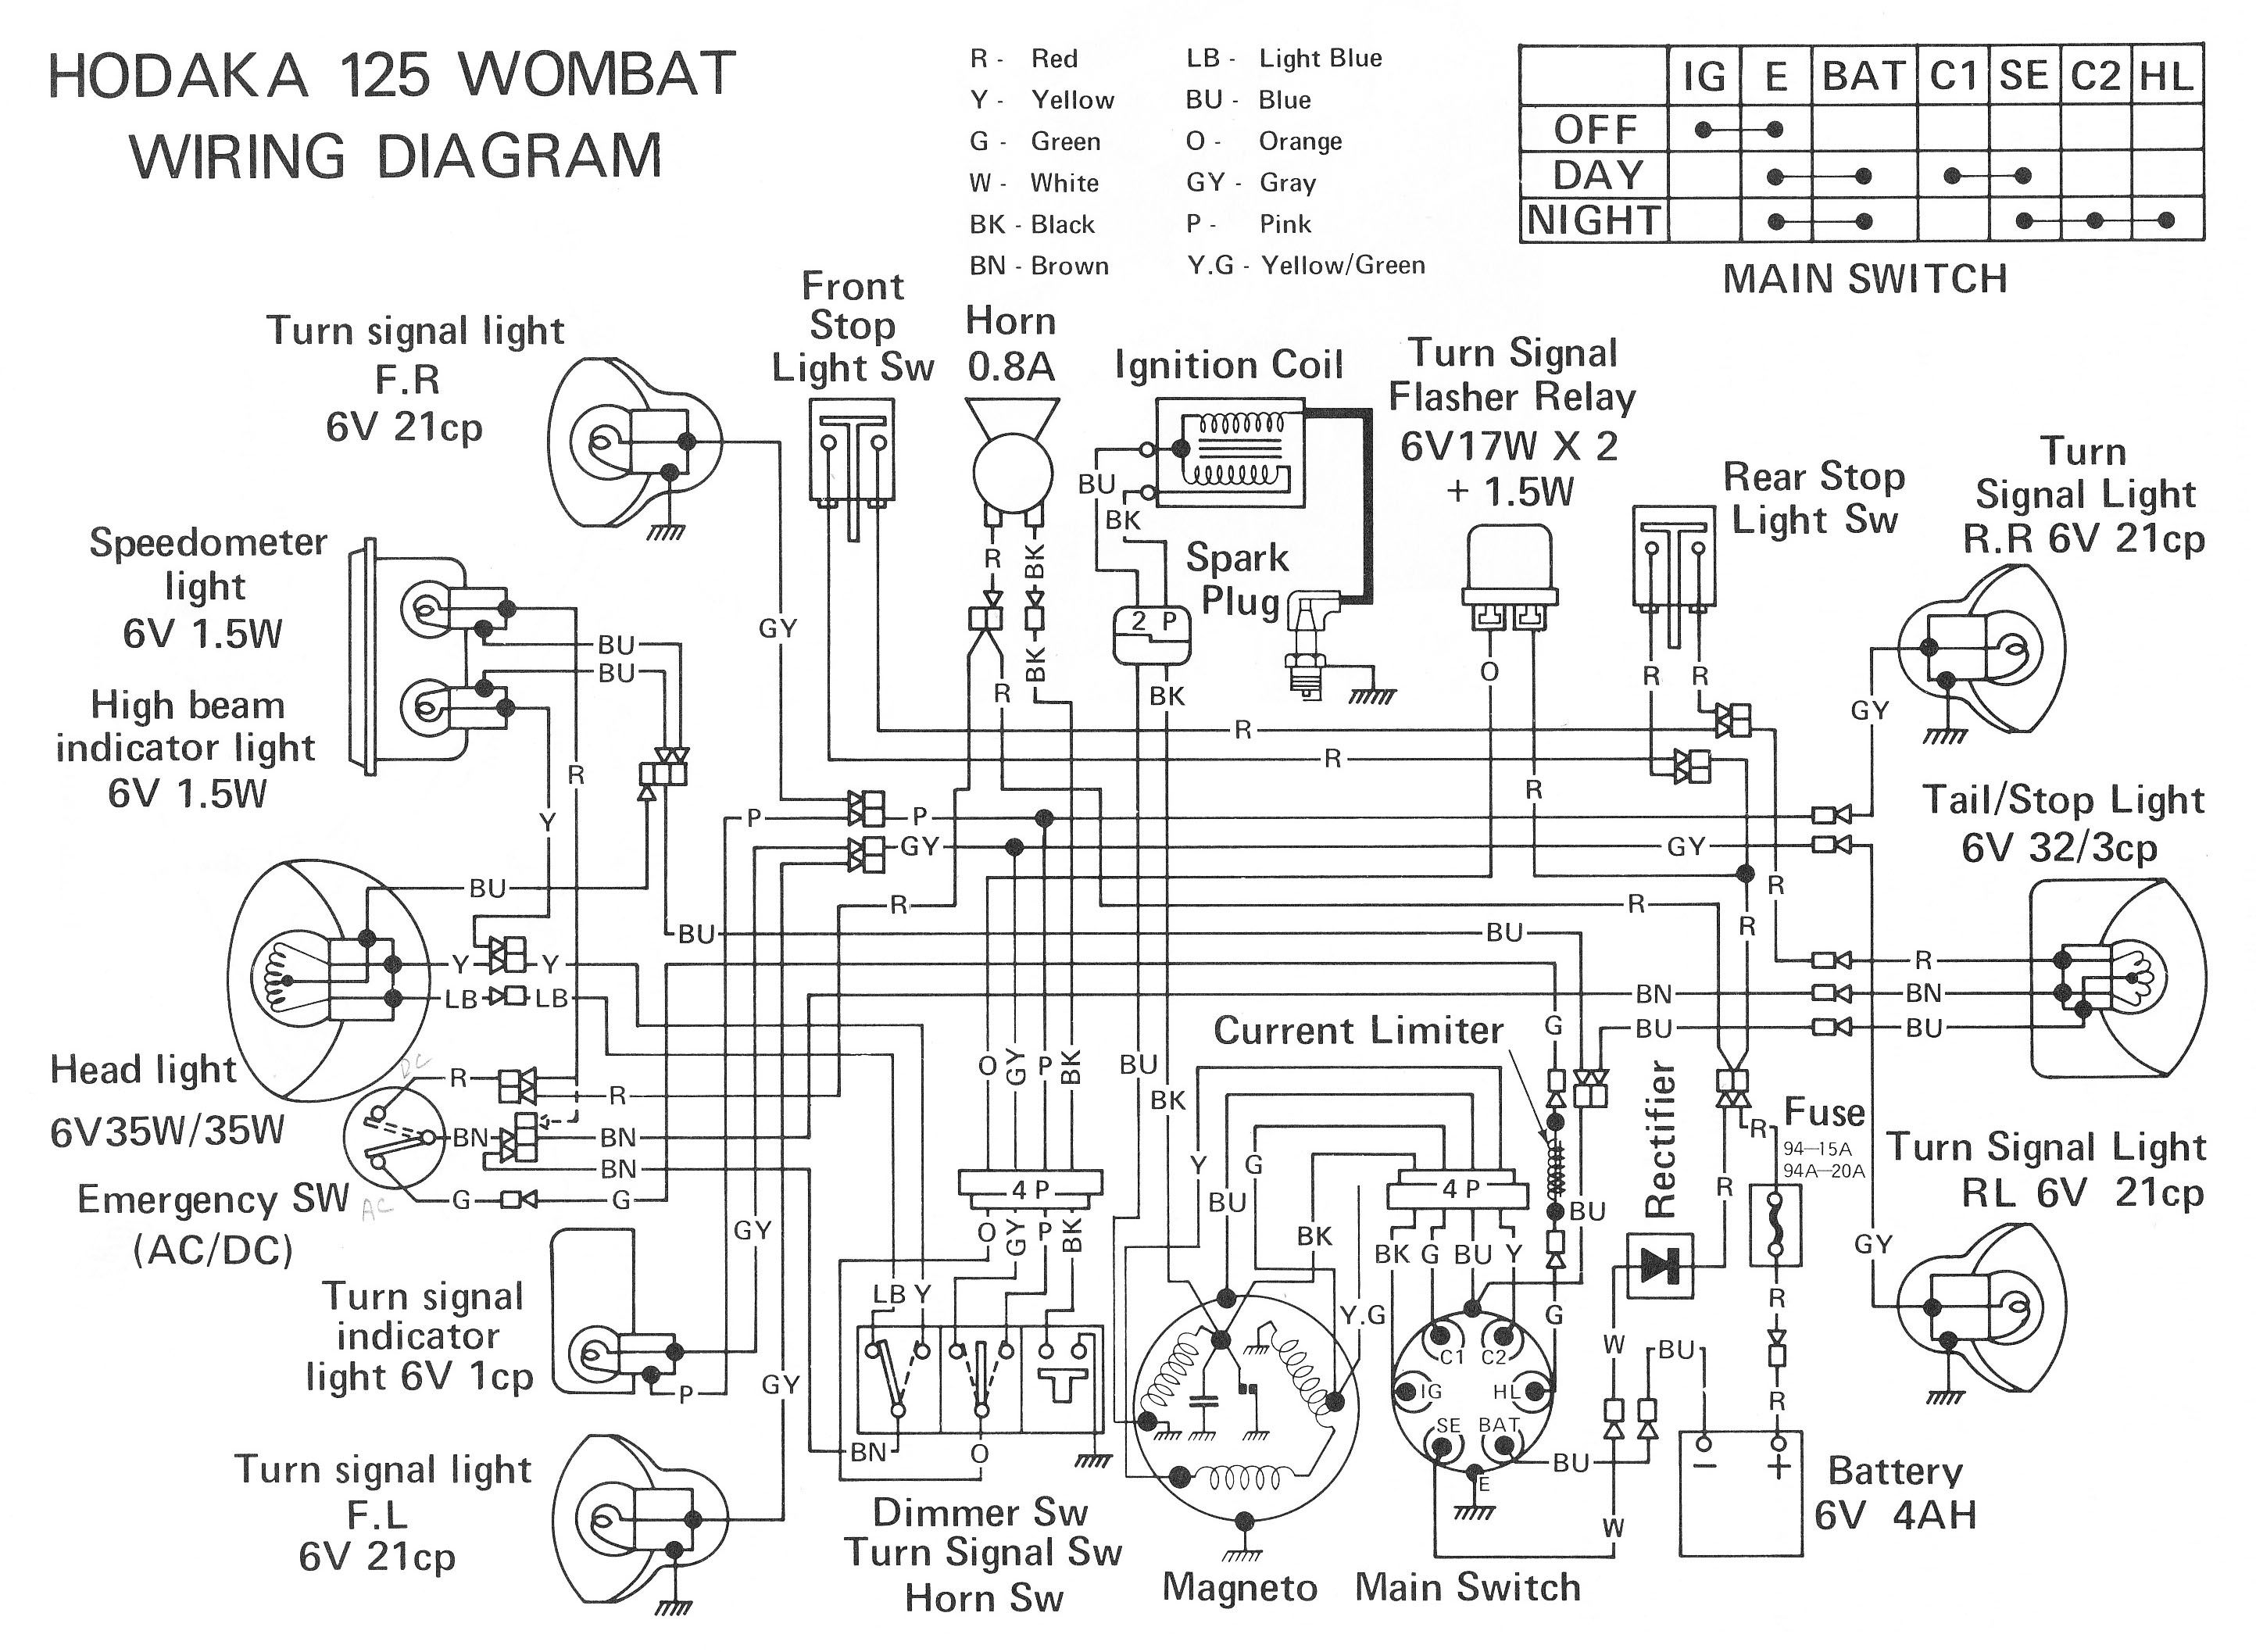 reading a motorcycle wiring diagram 1995 gmc sonoma radio dirt bike hodaka pinterest